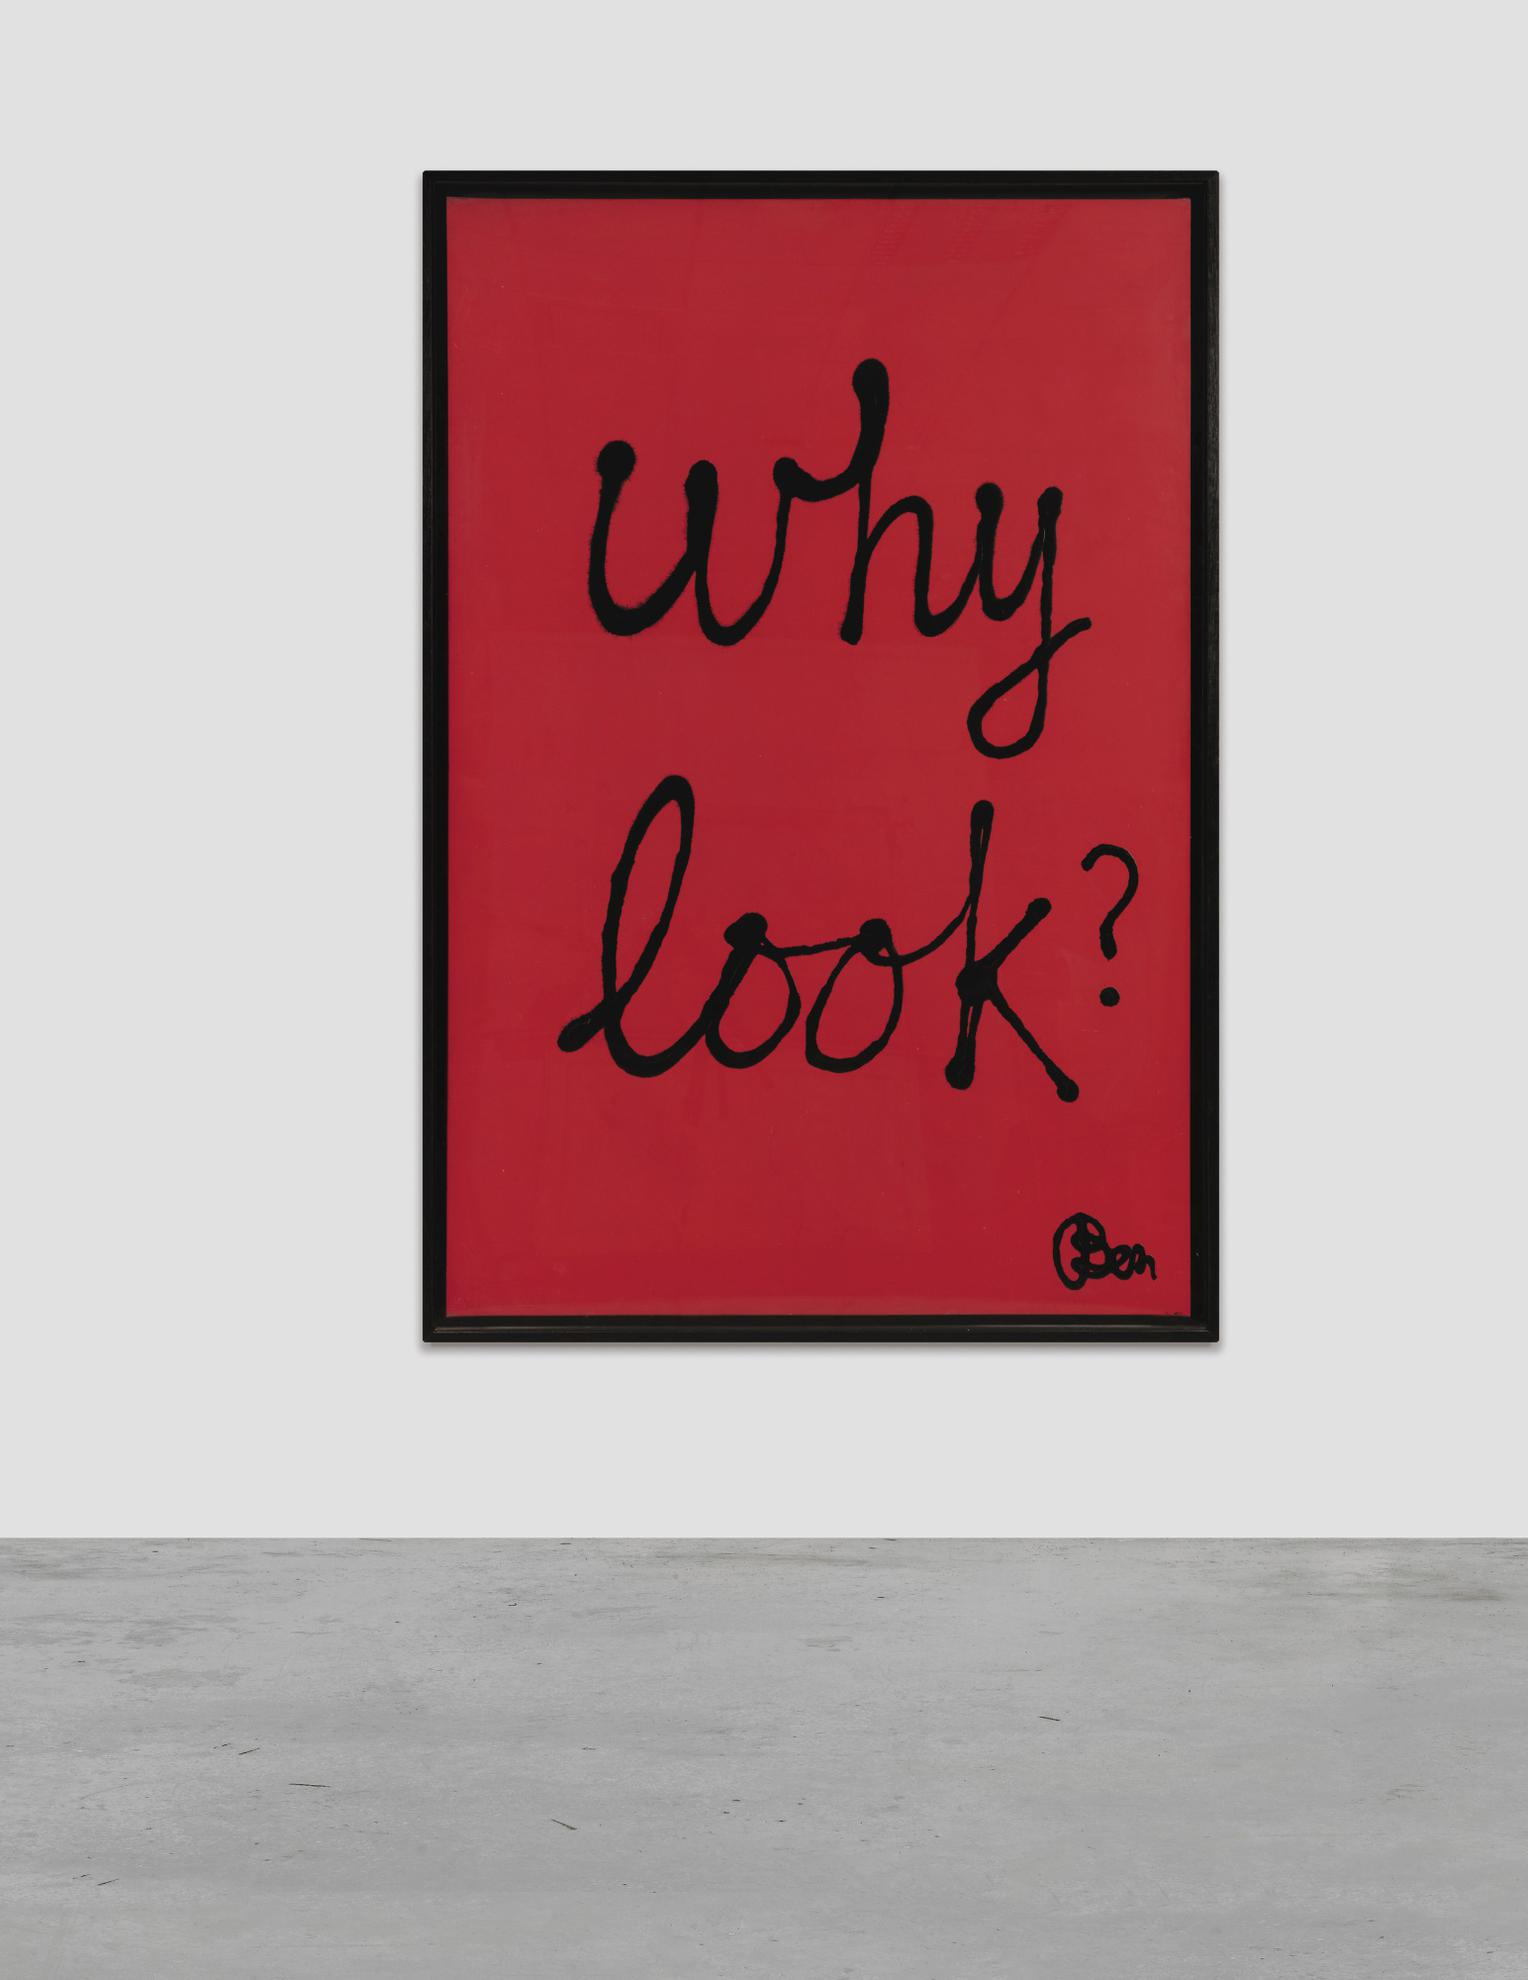 Ben Vautier-Why Look?-1981